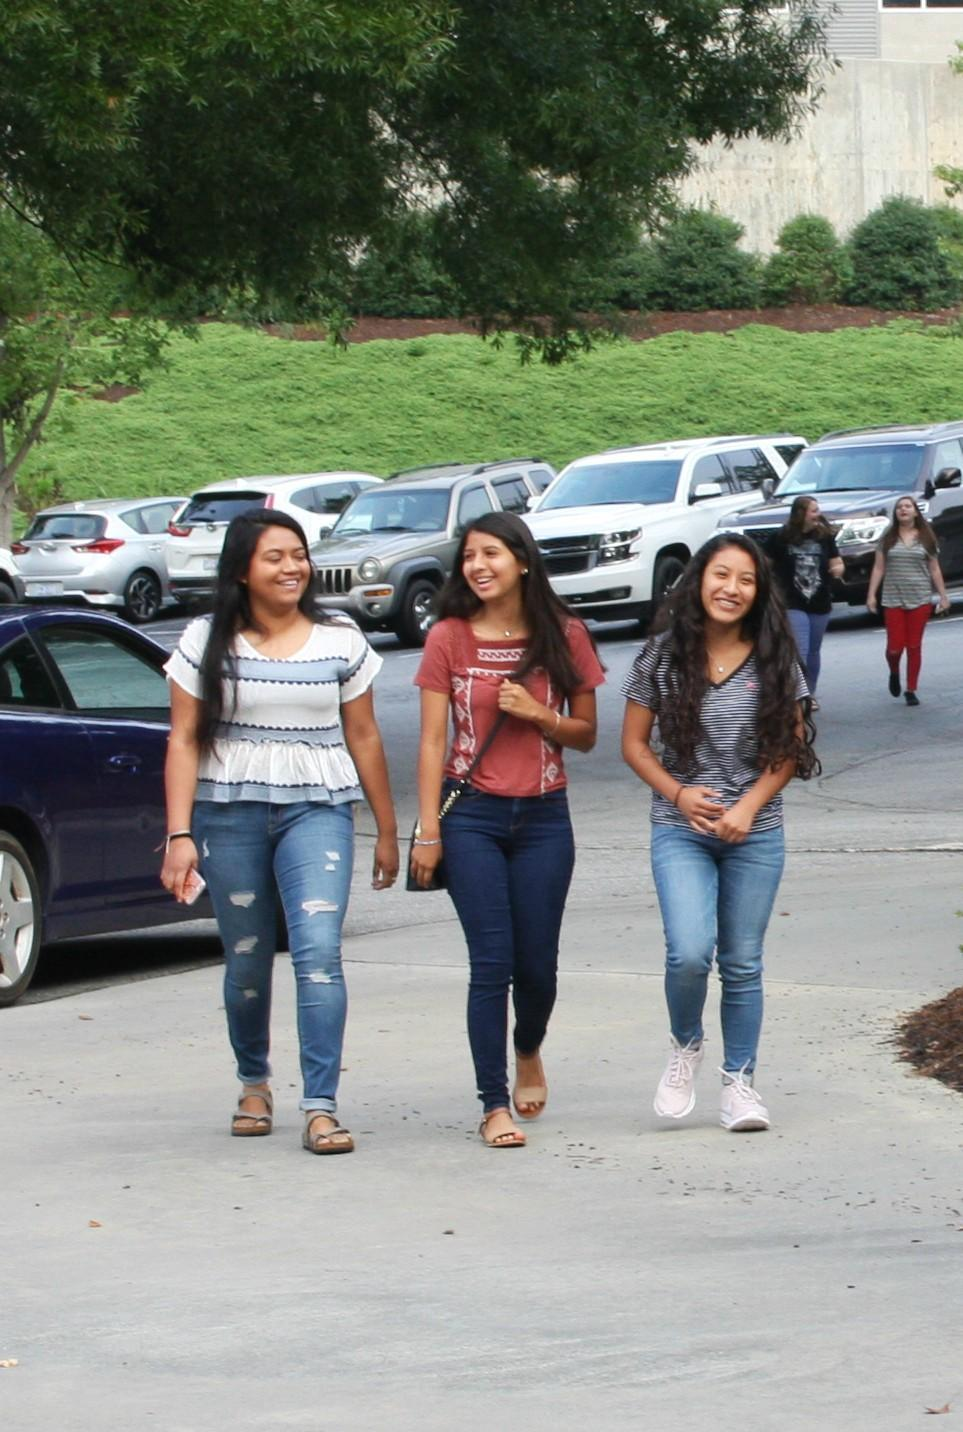 Three girls arrive at school on the first day at Wilkes Early College High School